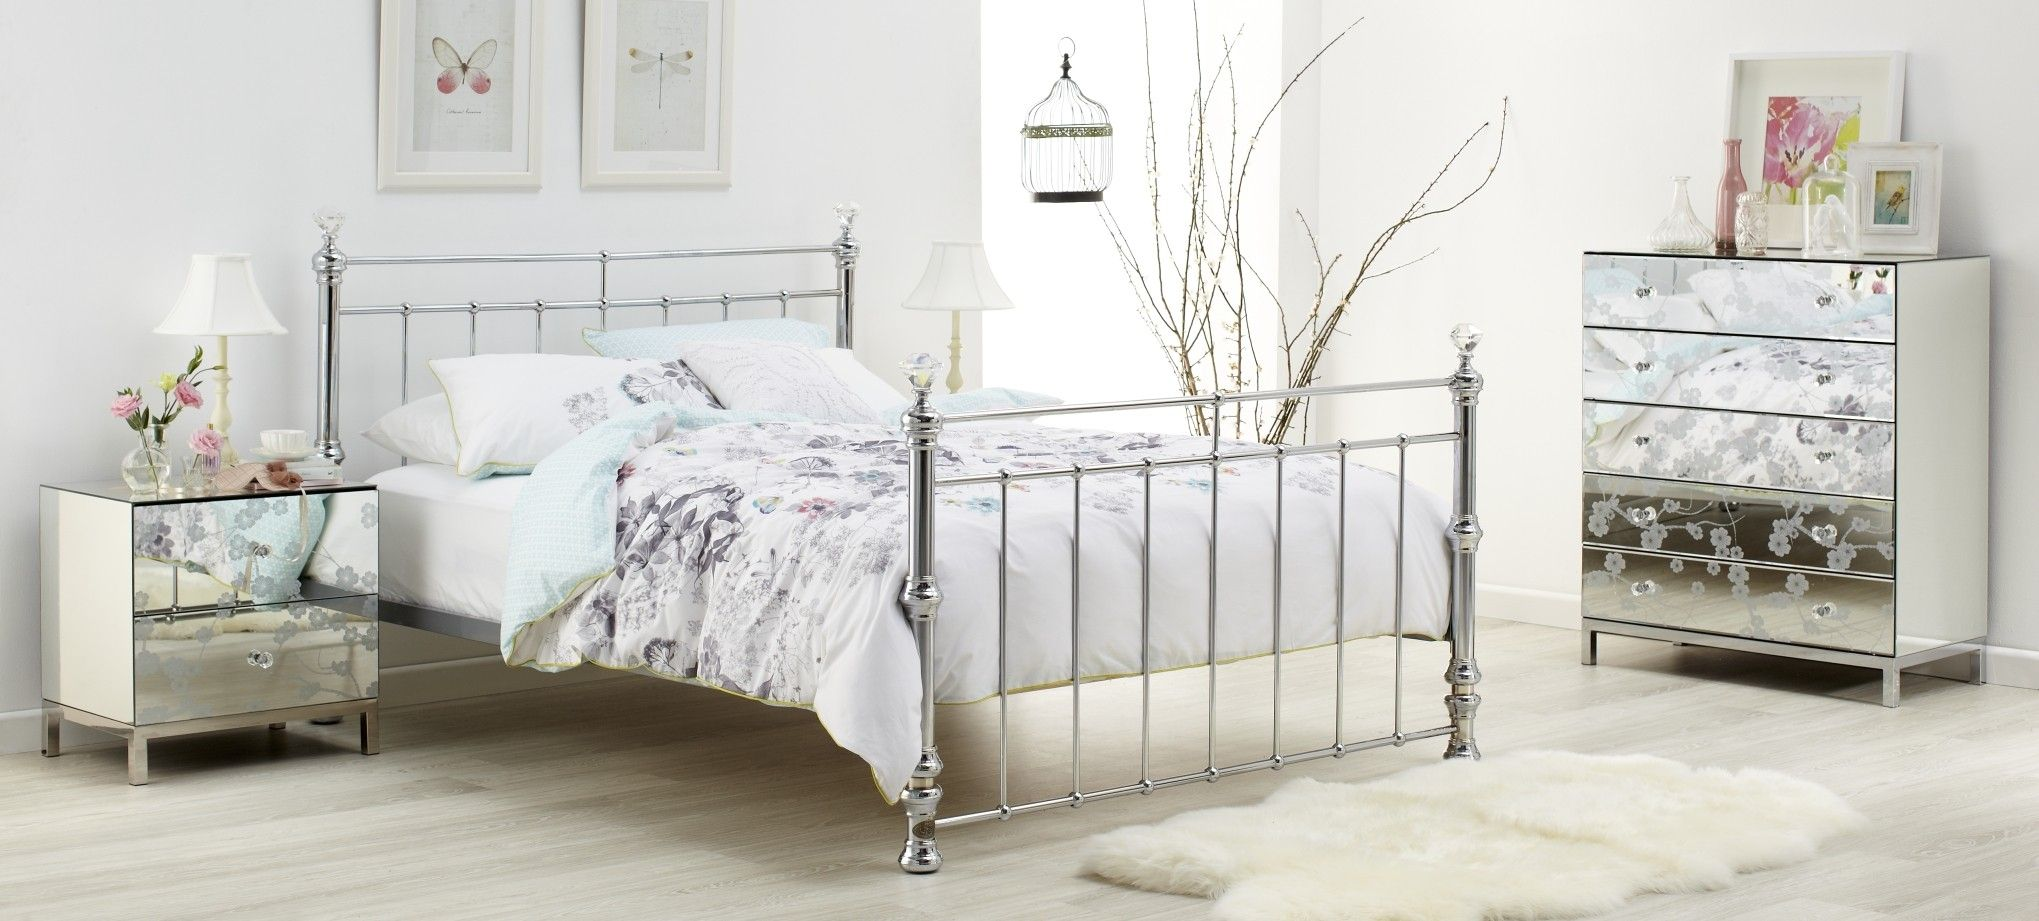 Crystal Bedroom Furniture This stylish chrome plated bed